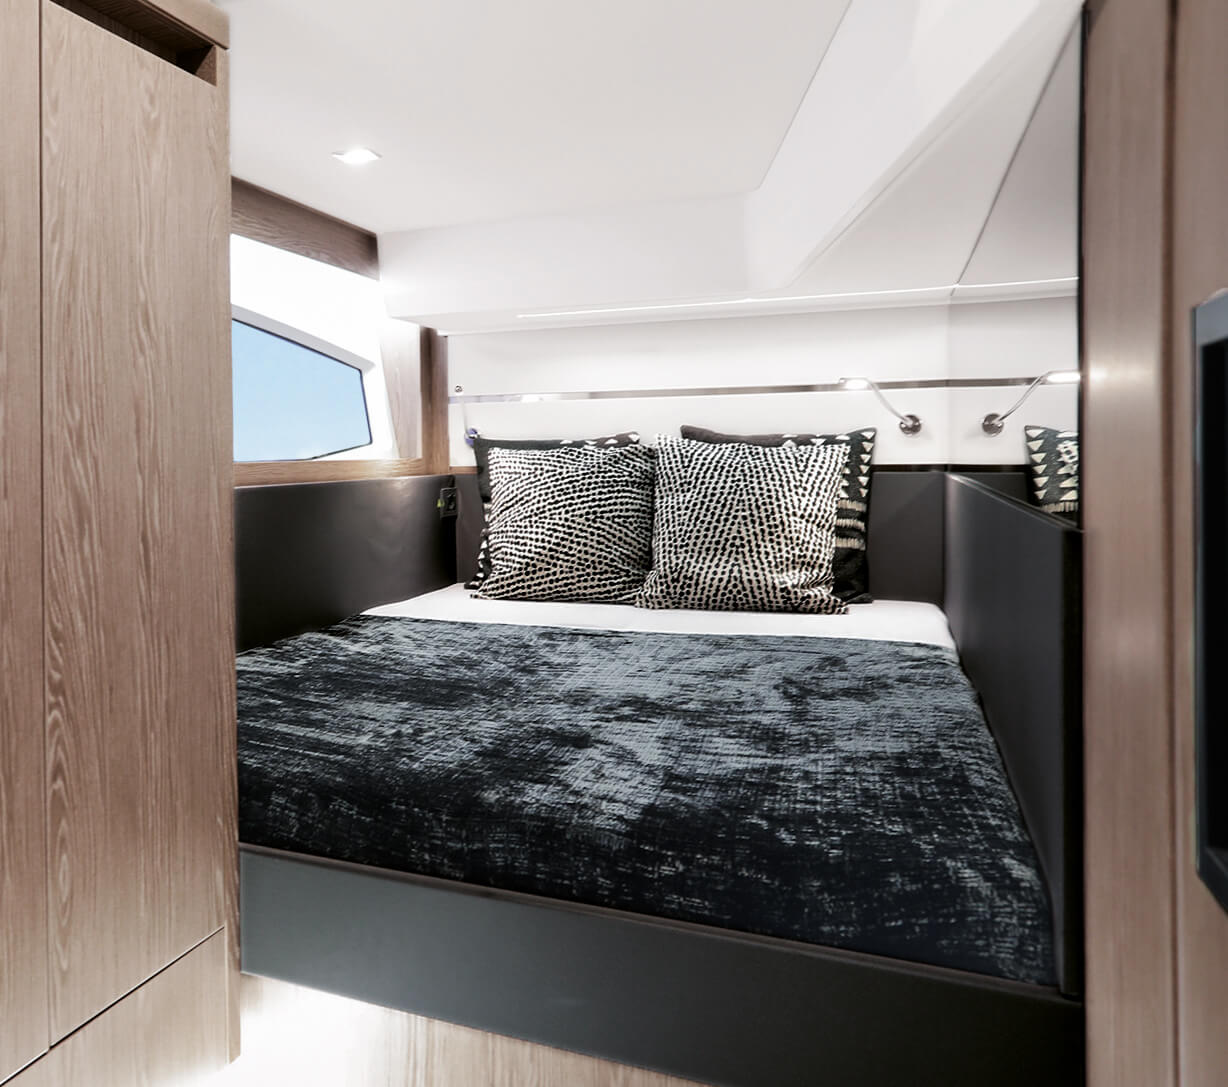 Sealine F430 Intérieur vue | Starboard cabin with double berth and wardrobe | Sealine